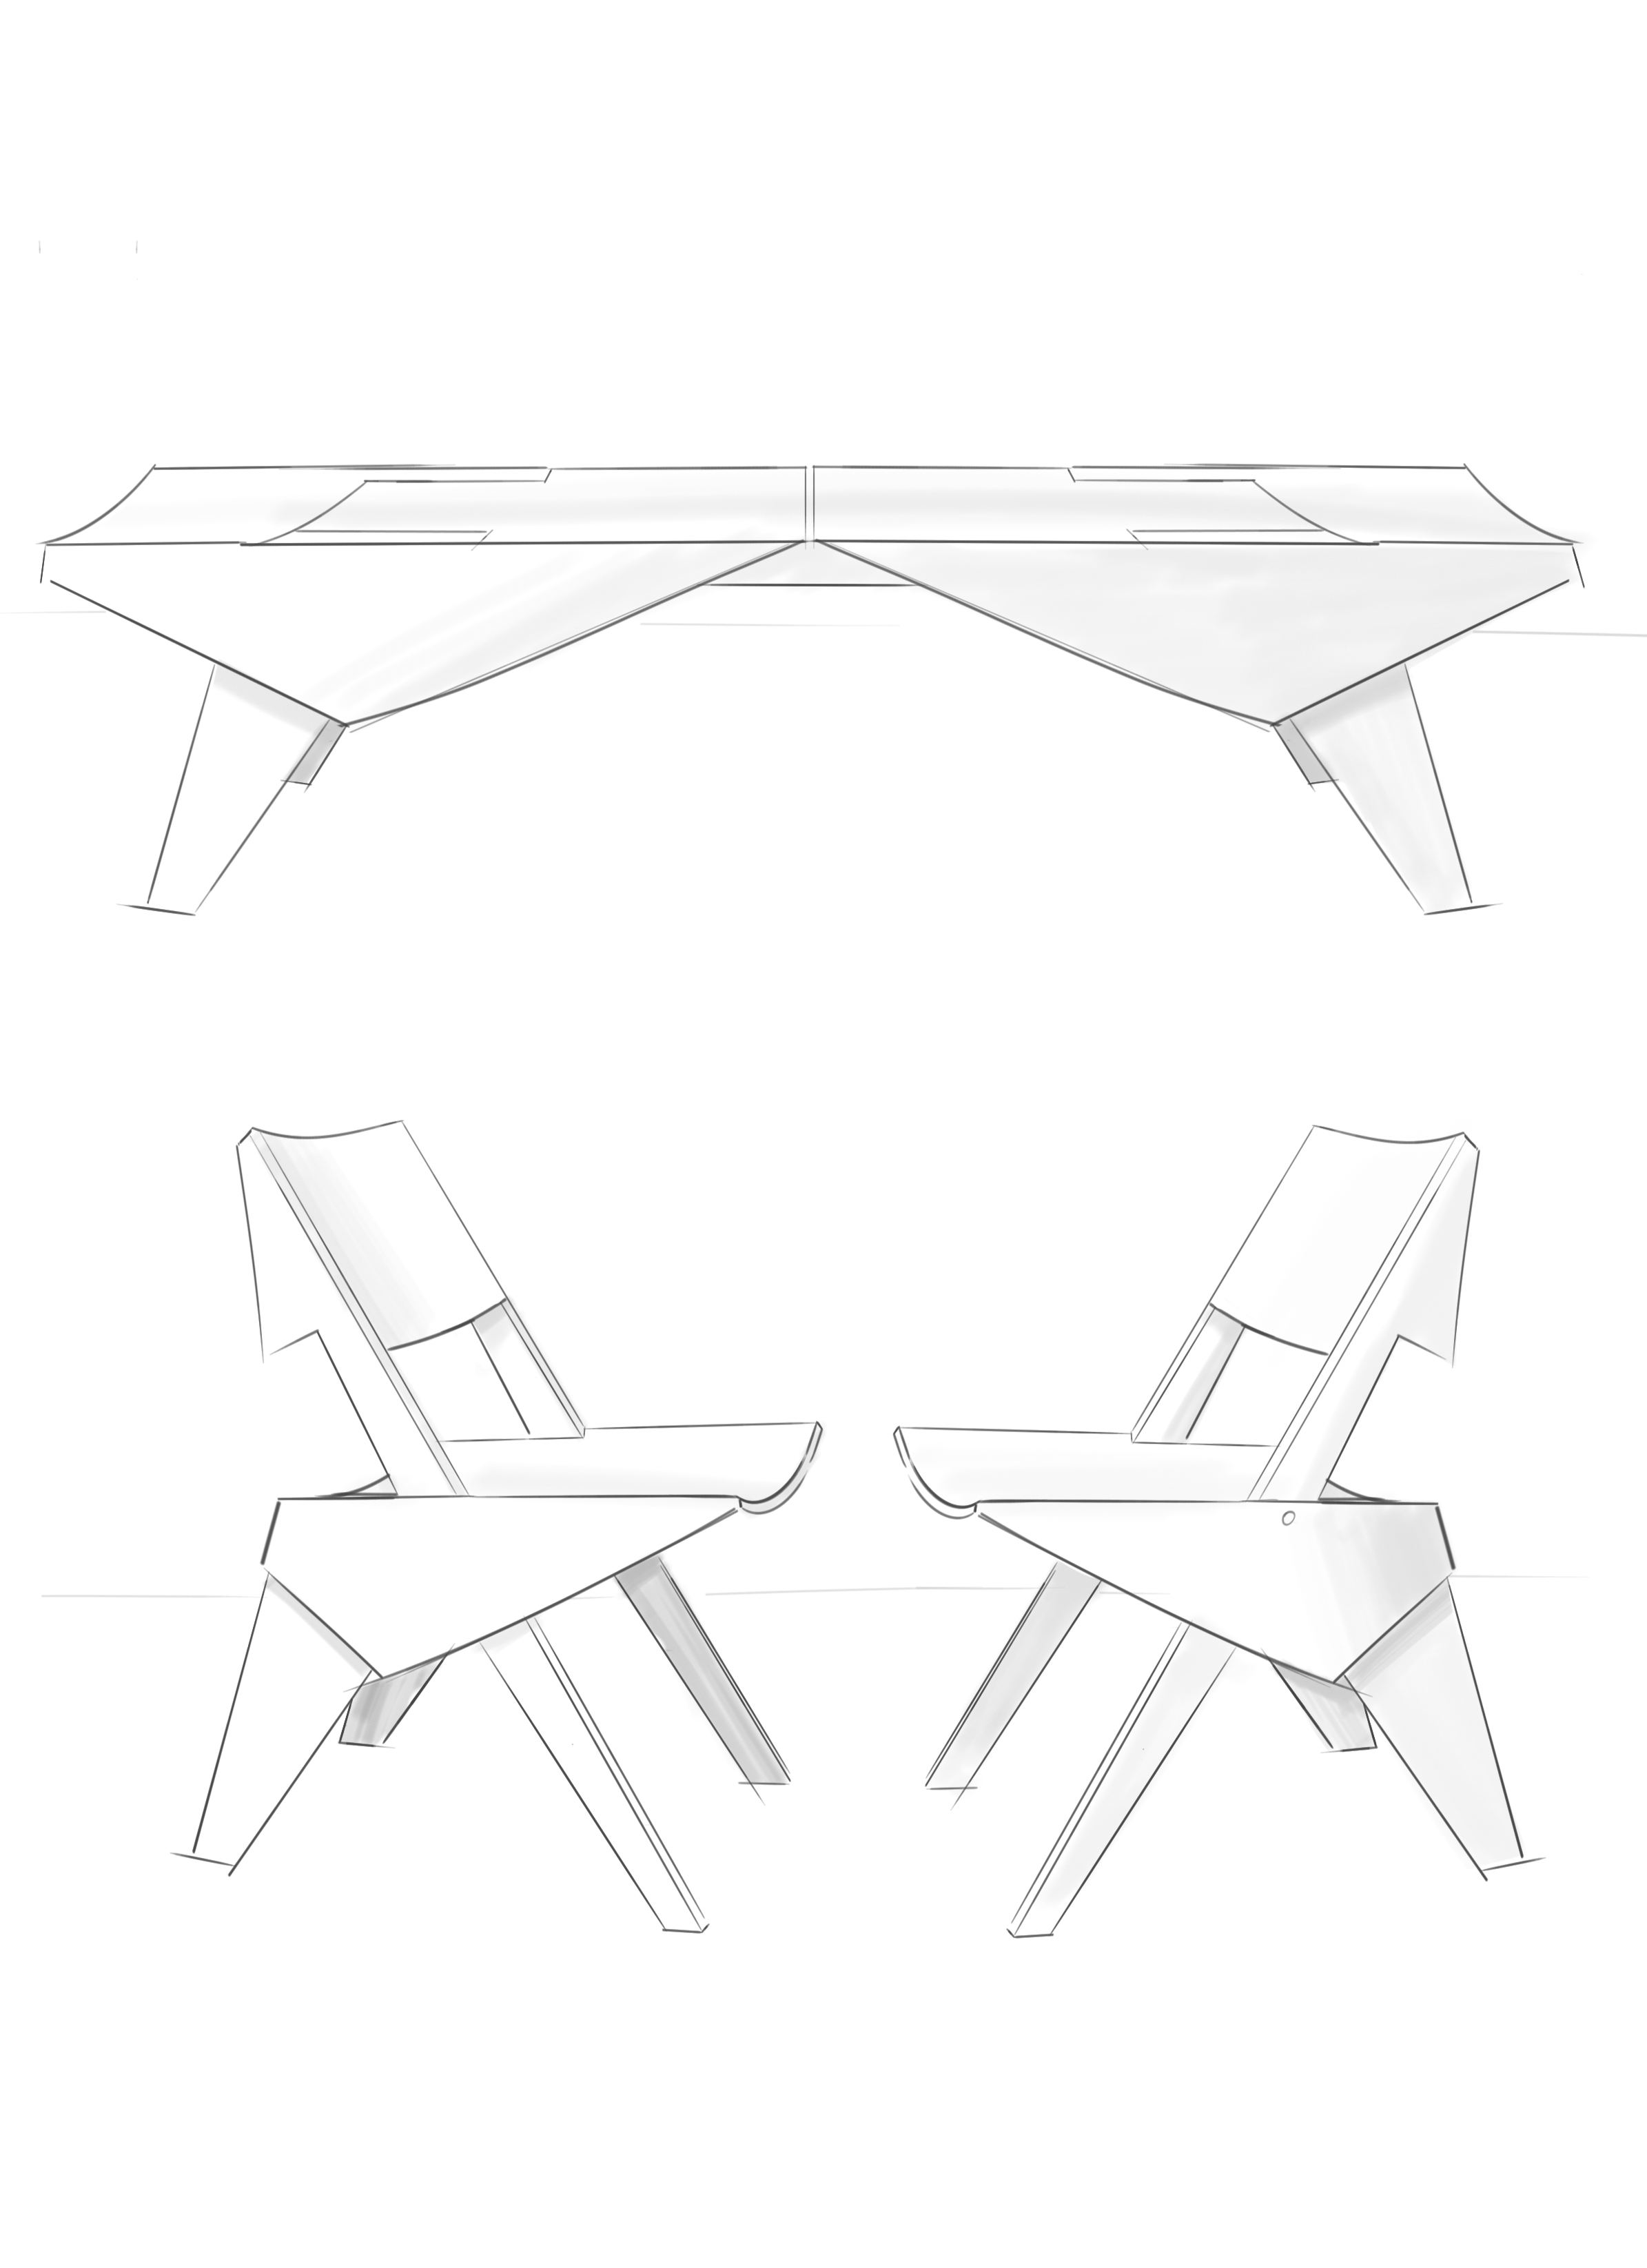 Transforming Chairs to Coffee Table   Digital, Sketchbook Pro